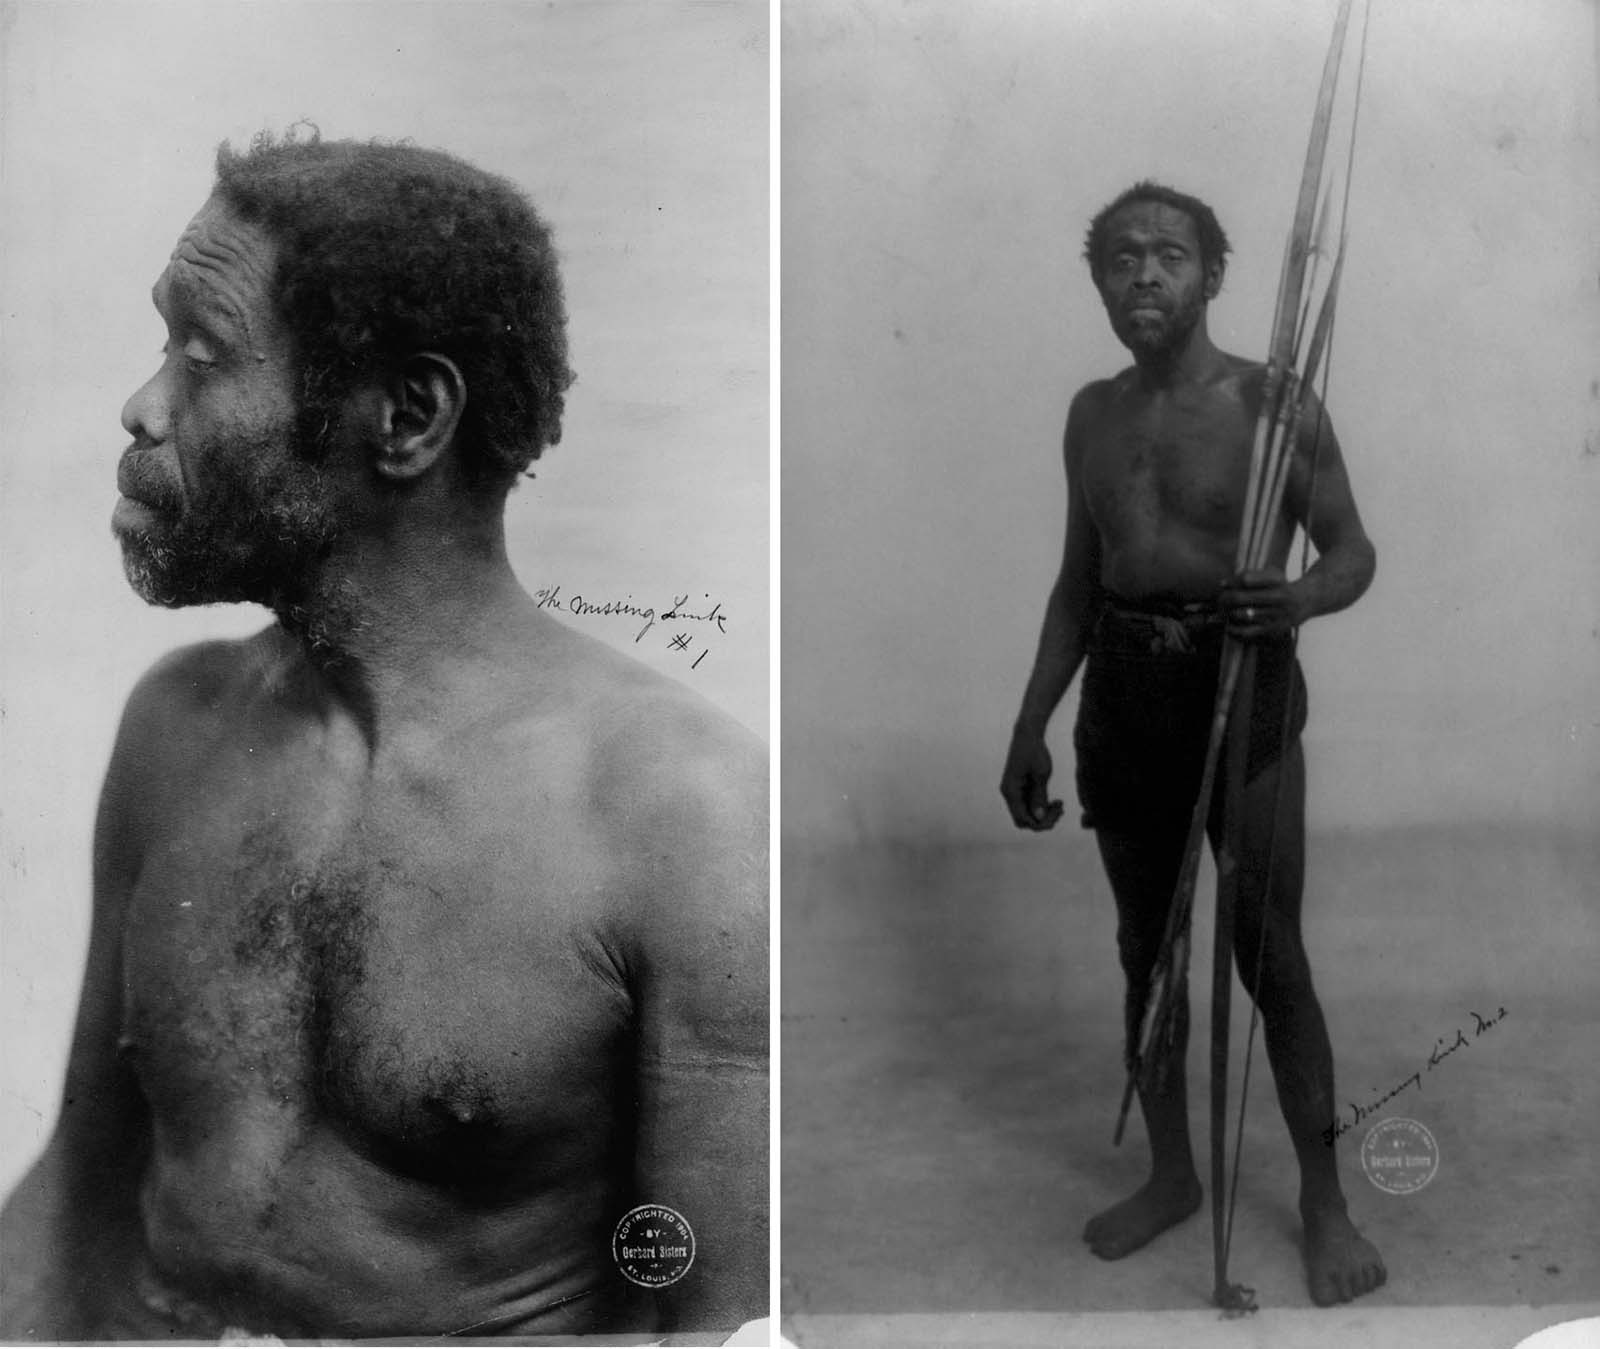 This unidentified African man was cruelly displayed as an exhibit at the 1904 St. Louis World's Fair in Missouri. The words 'the missing link' were scrawled on both of the photos.